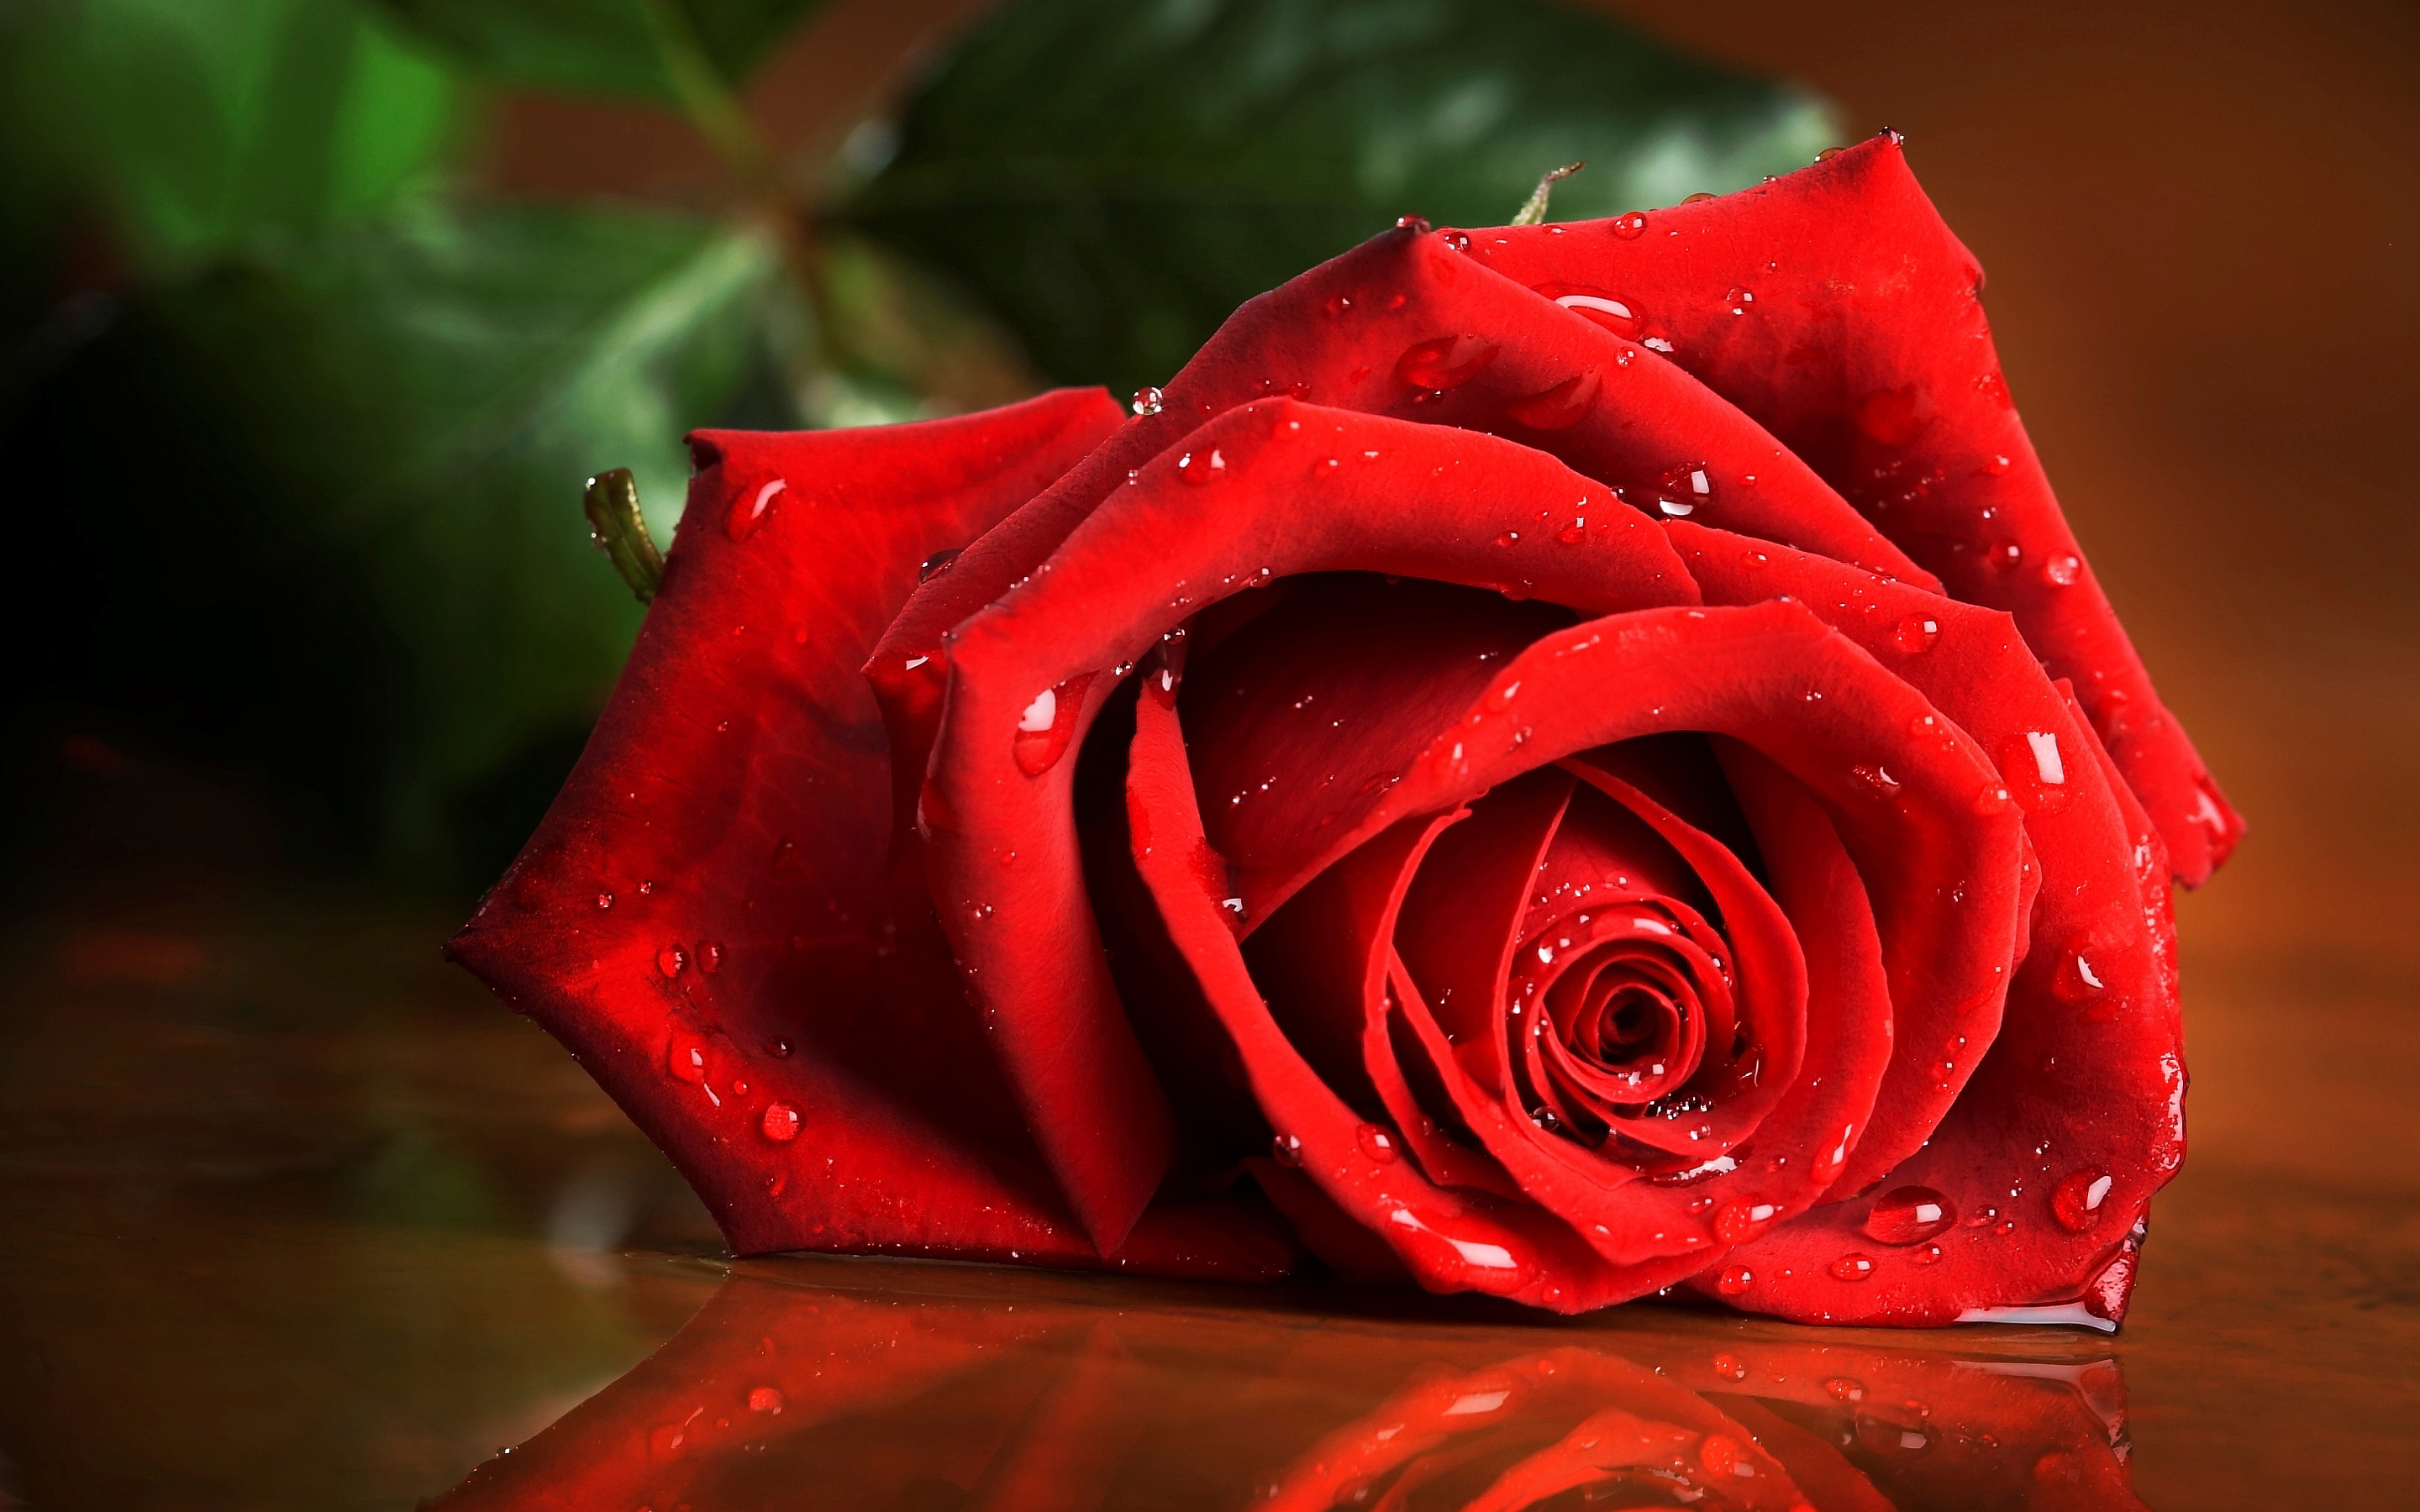 Wet rose hd